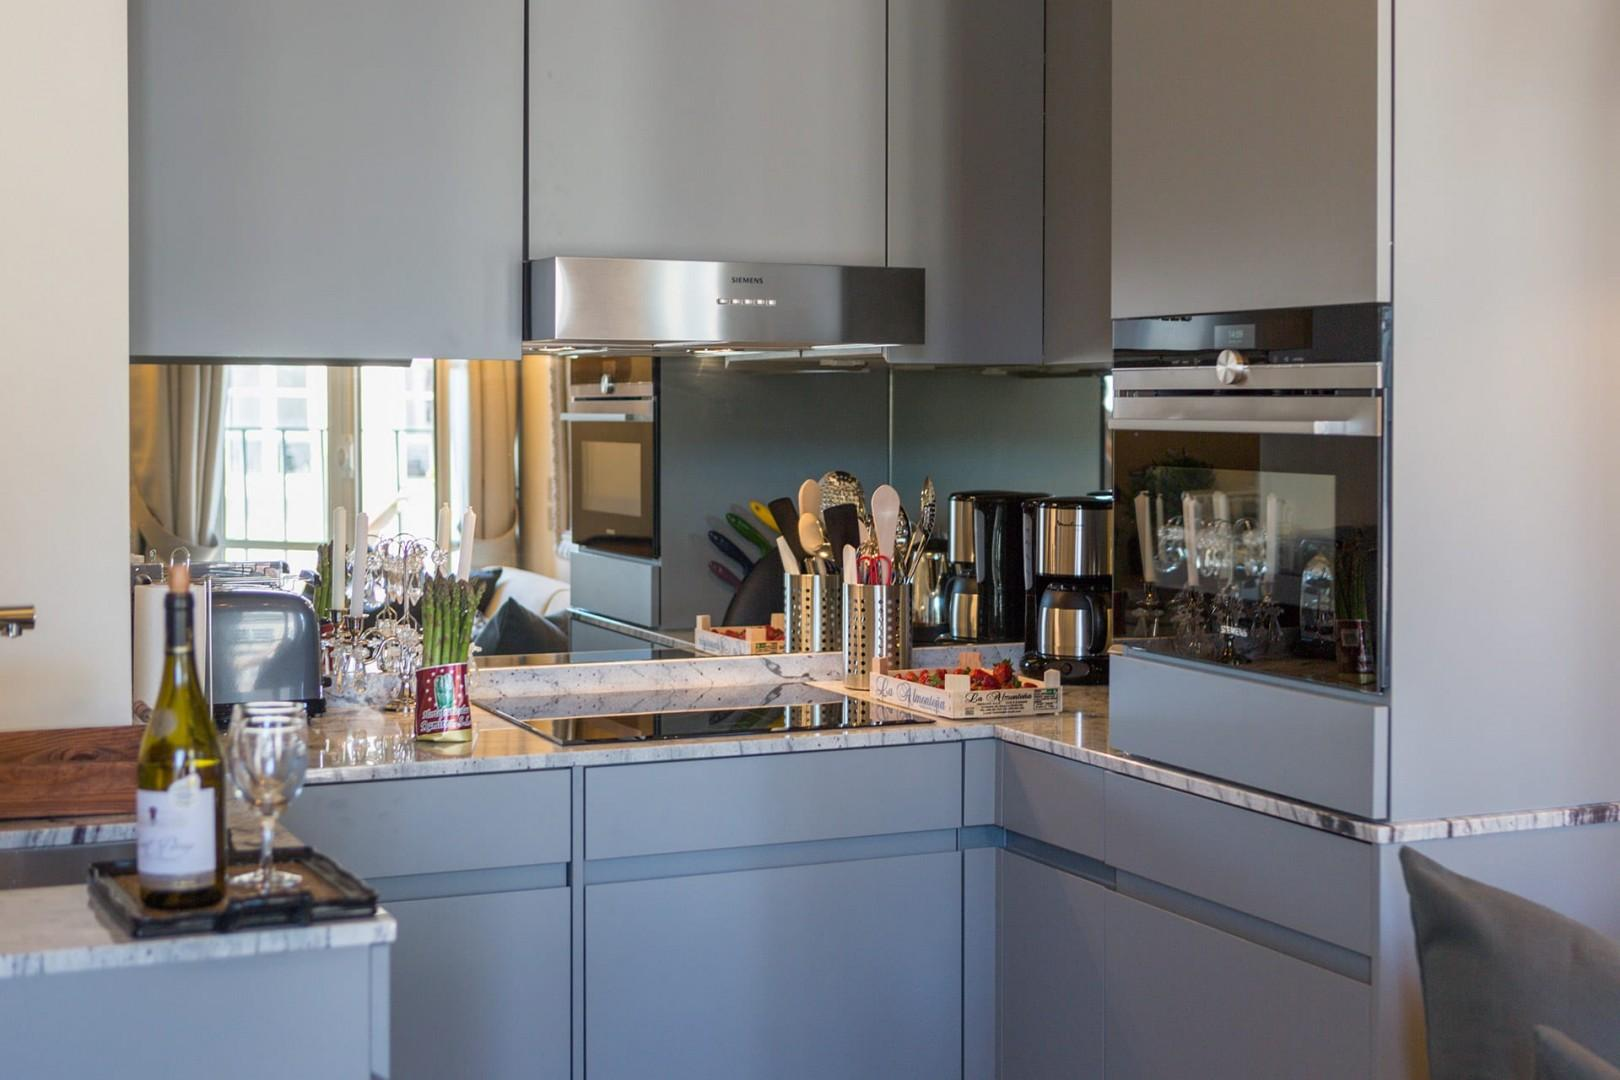 The kitchen features modern appliances for your comfort.